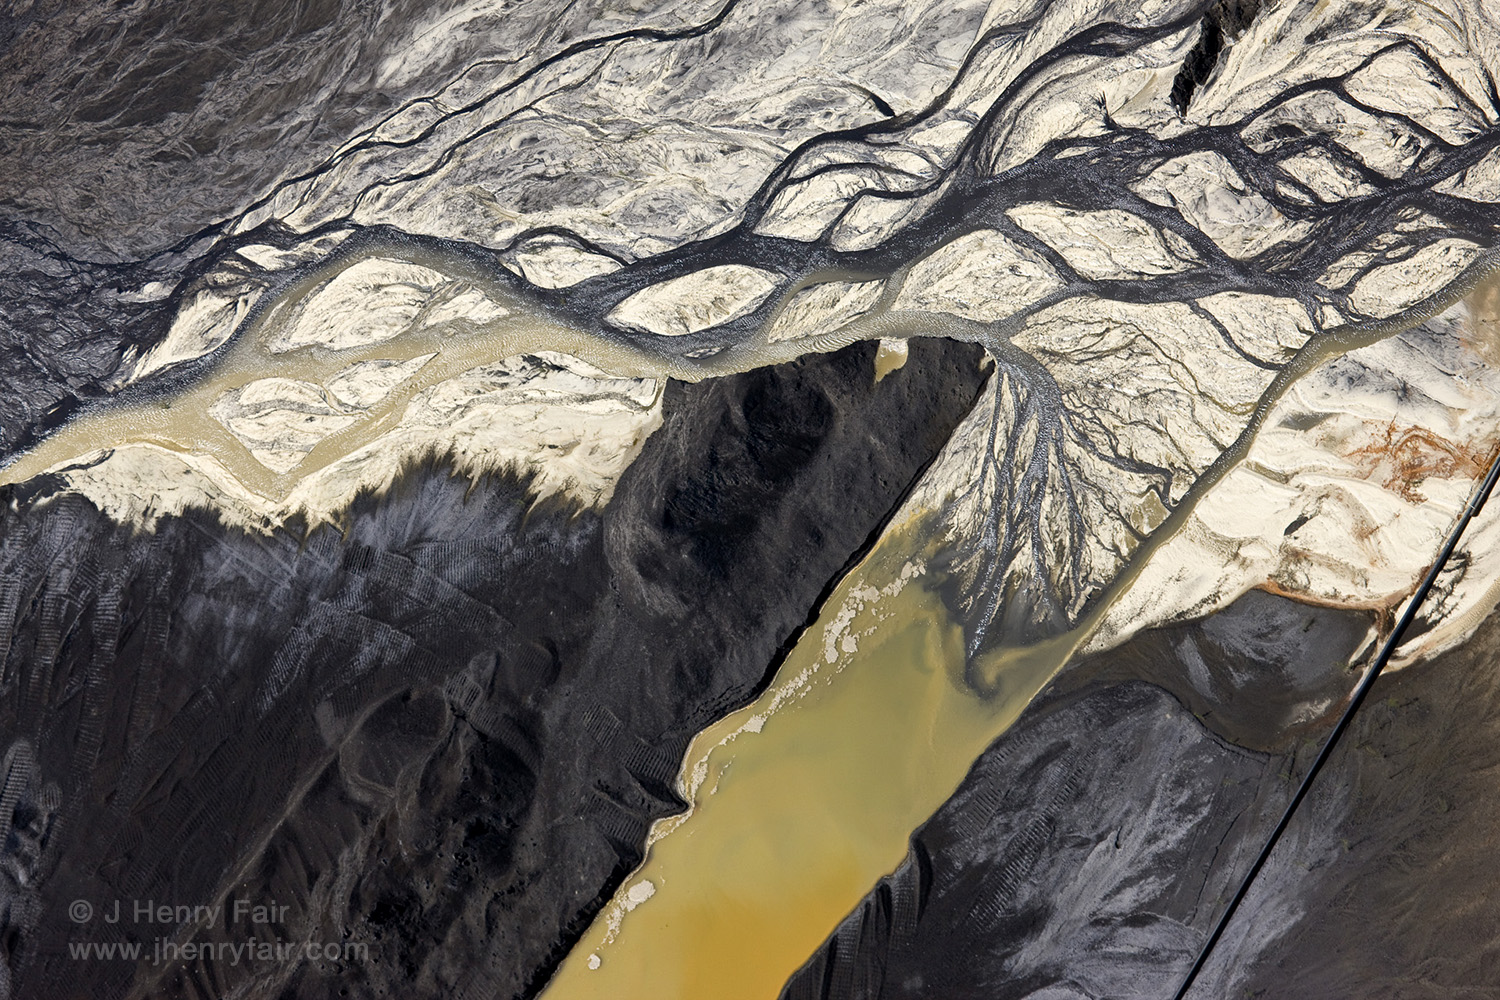 Air Pollution: Coal Ash And Desulfurization Waste At Power Plant